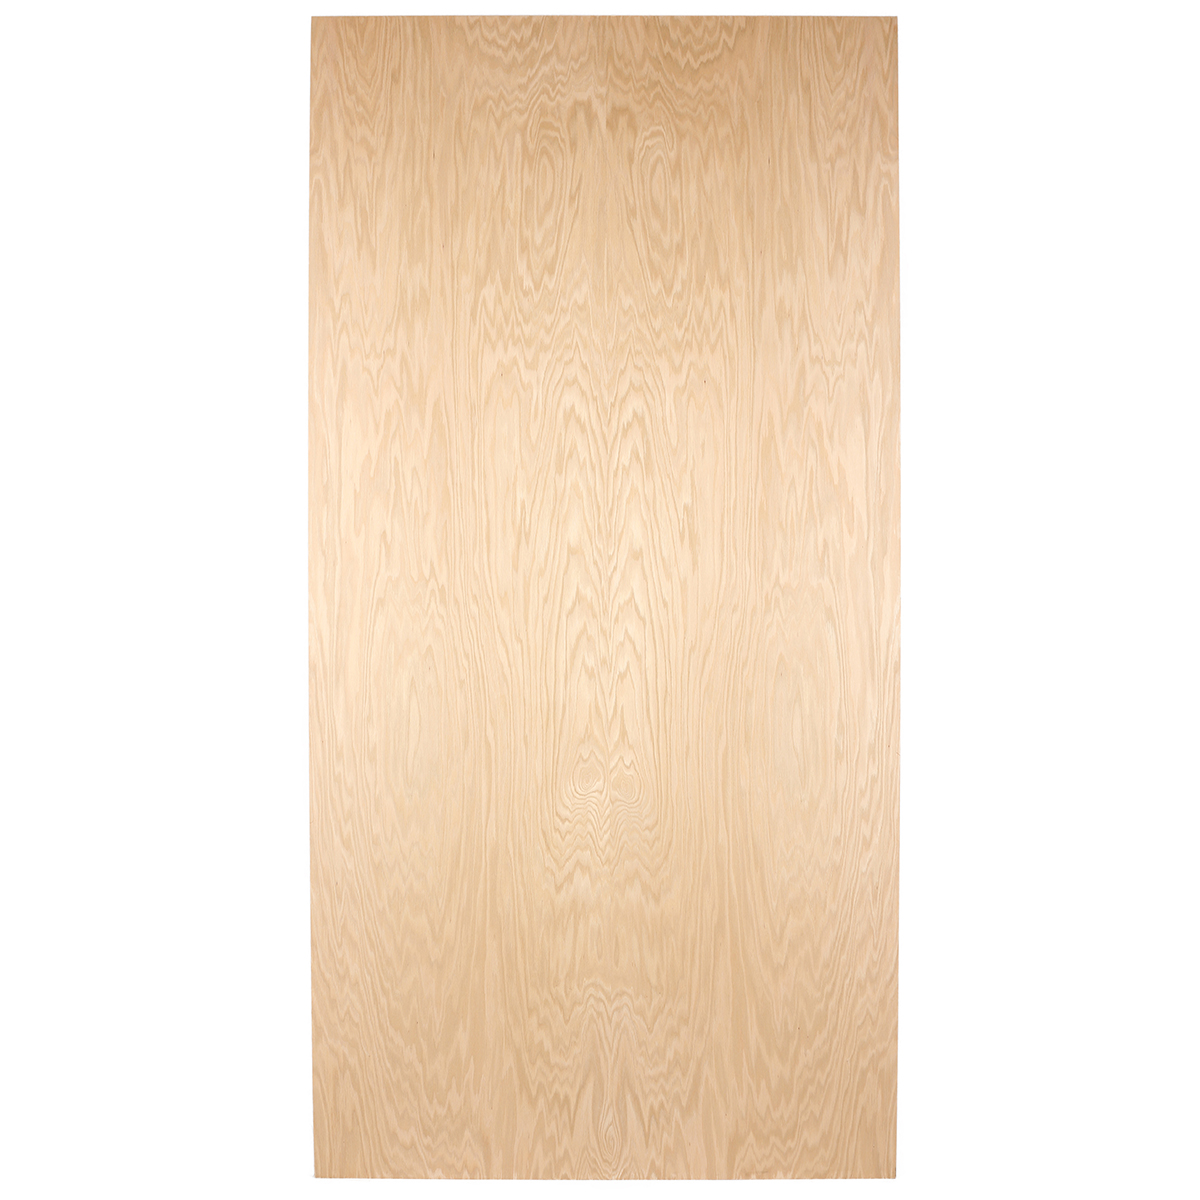 """3/4"""" Red Oak 4'x8' Plywood G2S - Made in USA"""